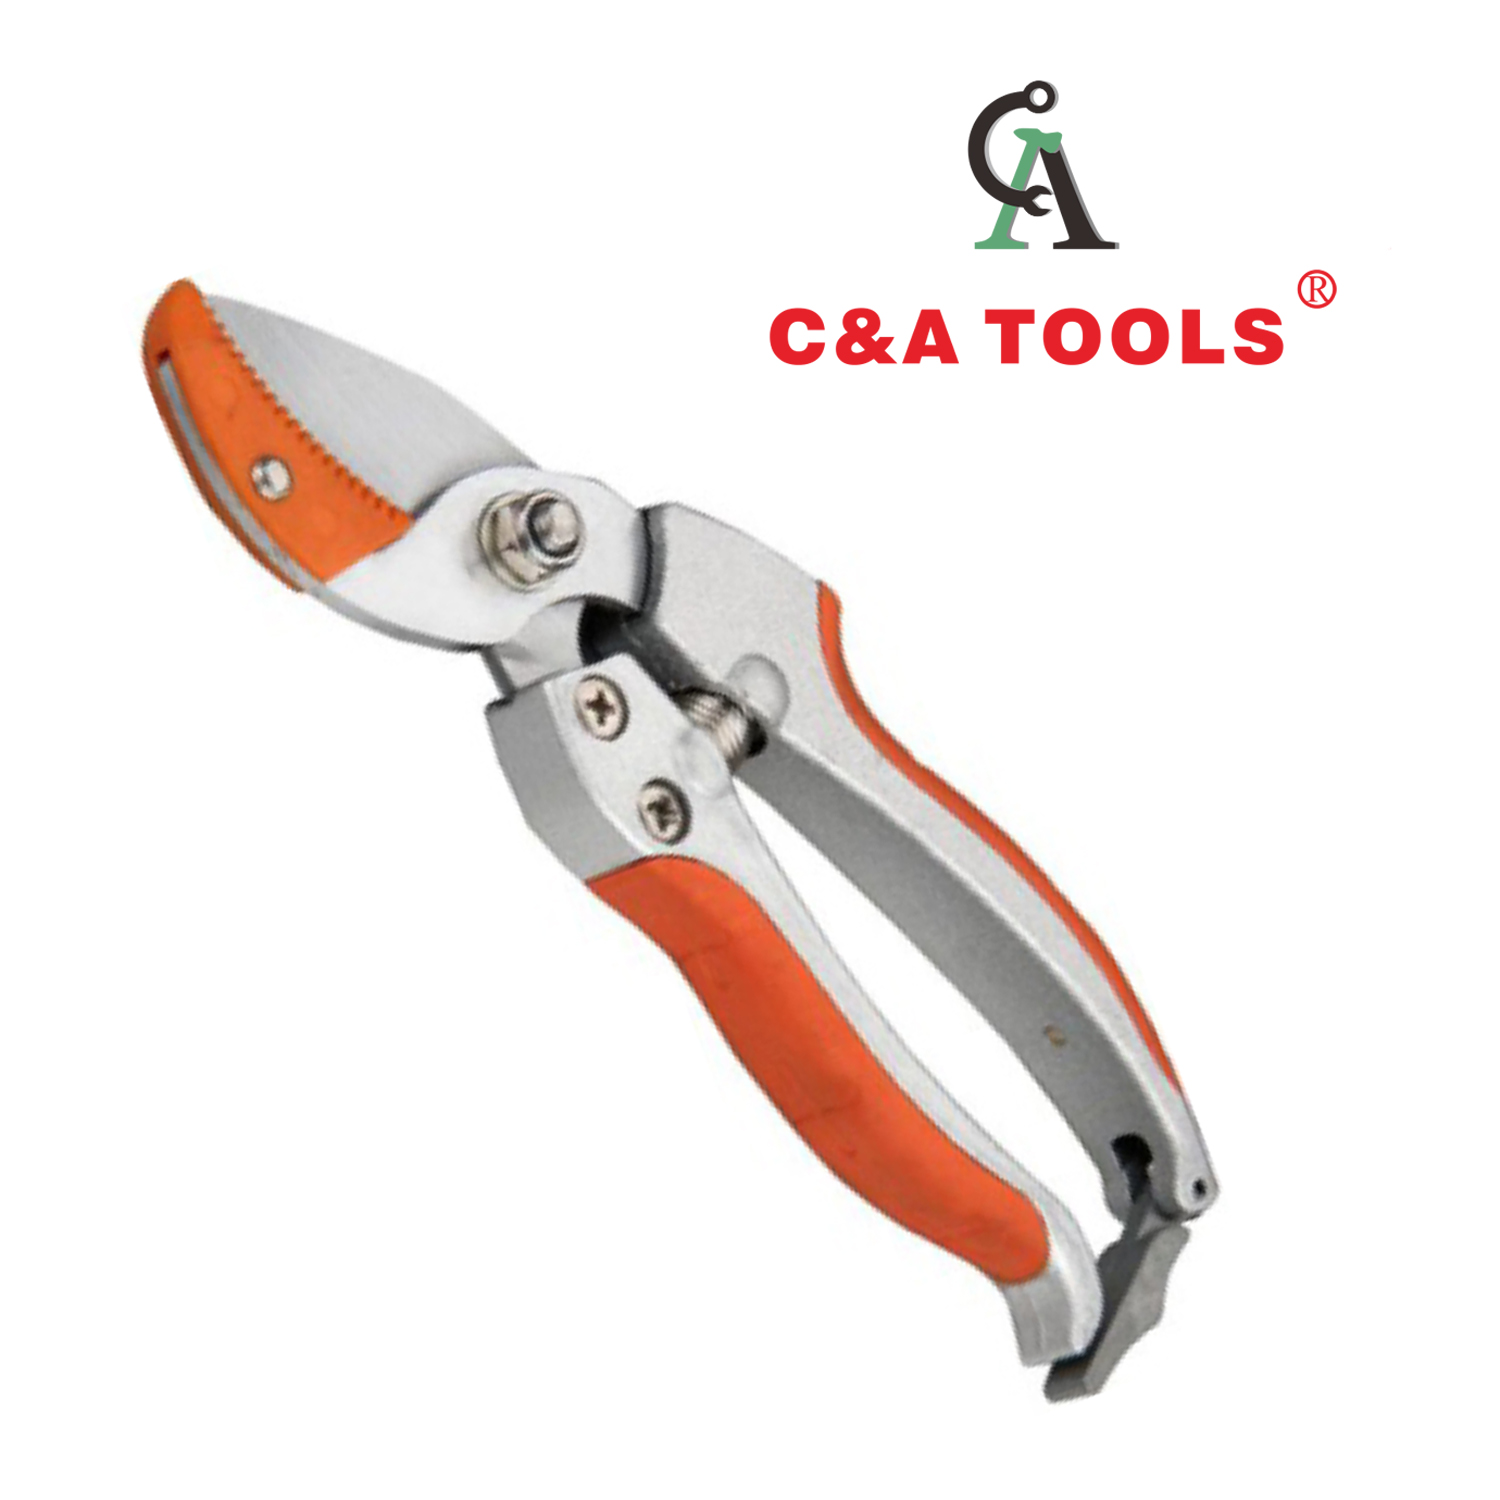 How To Use Pruning Shears?